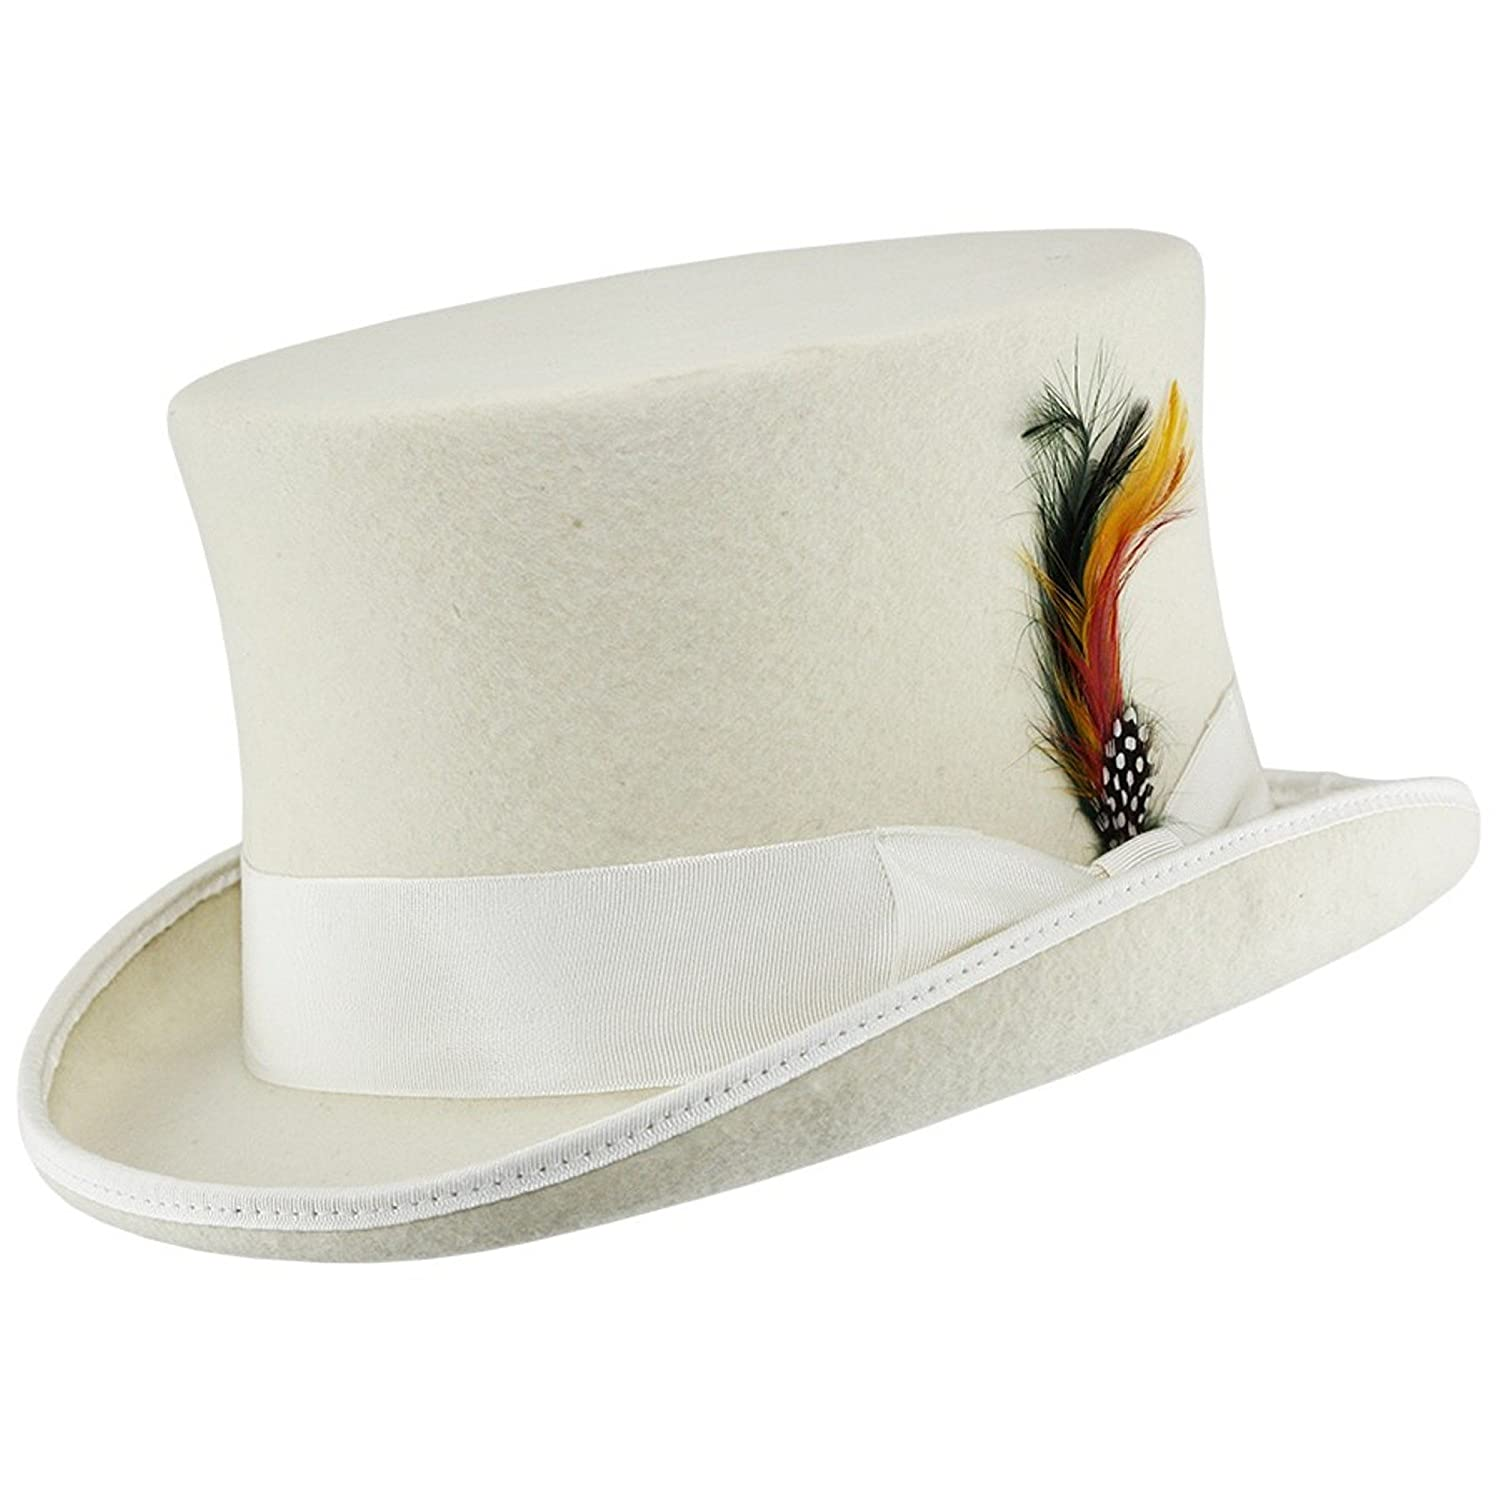 WHITE 100% WOOL SATIN LINED WEDDING EVENT FELT TOP HAT WITH FEATHER